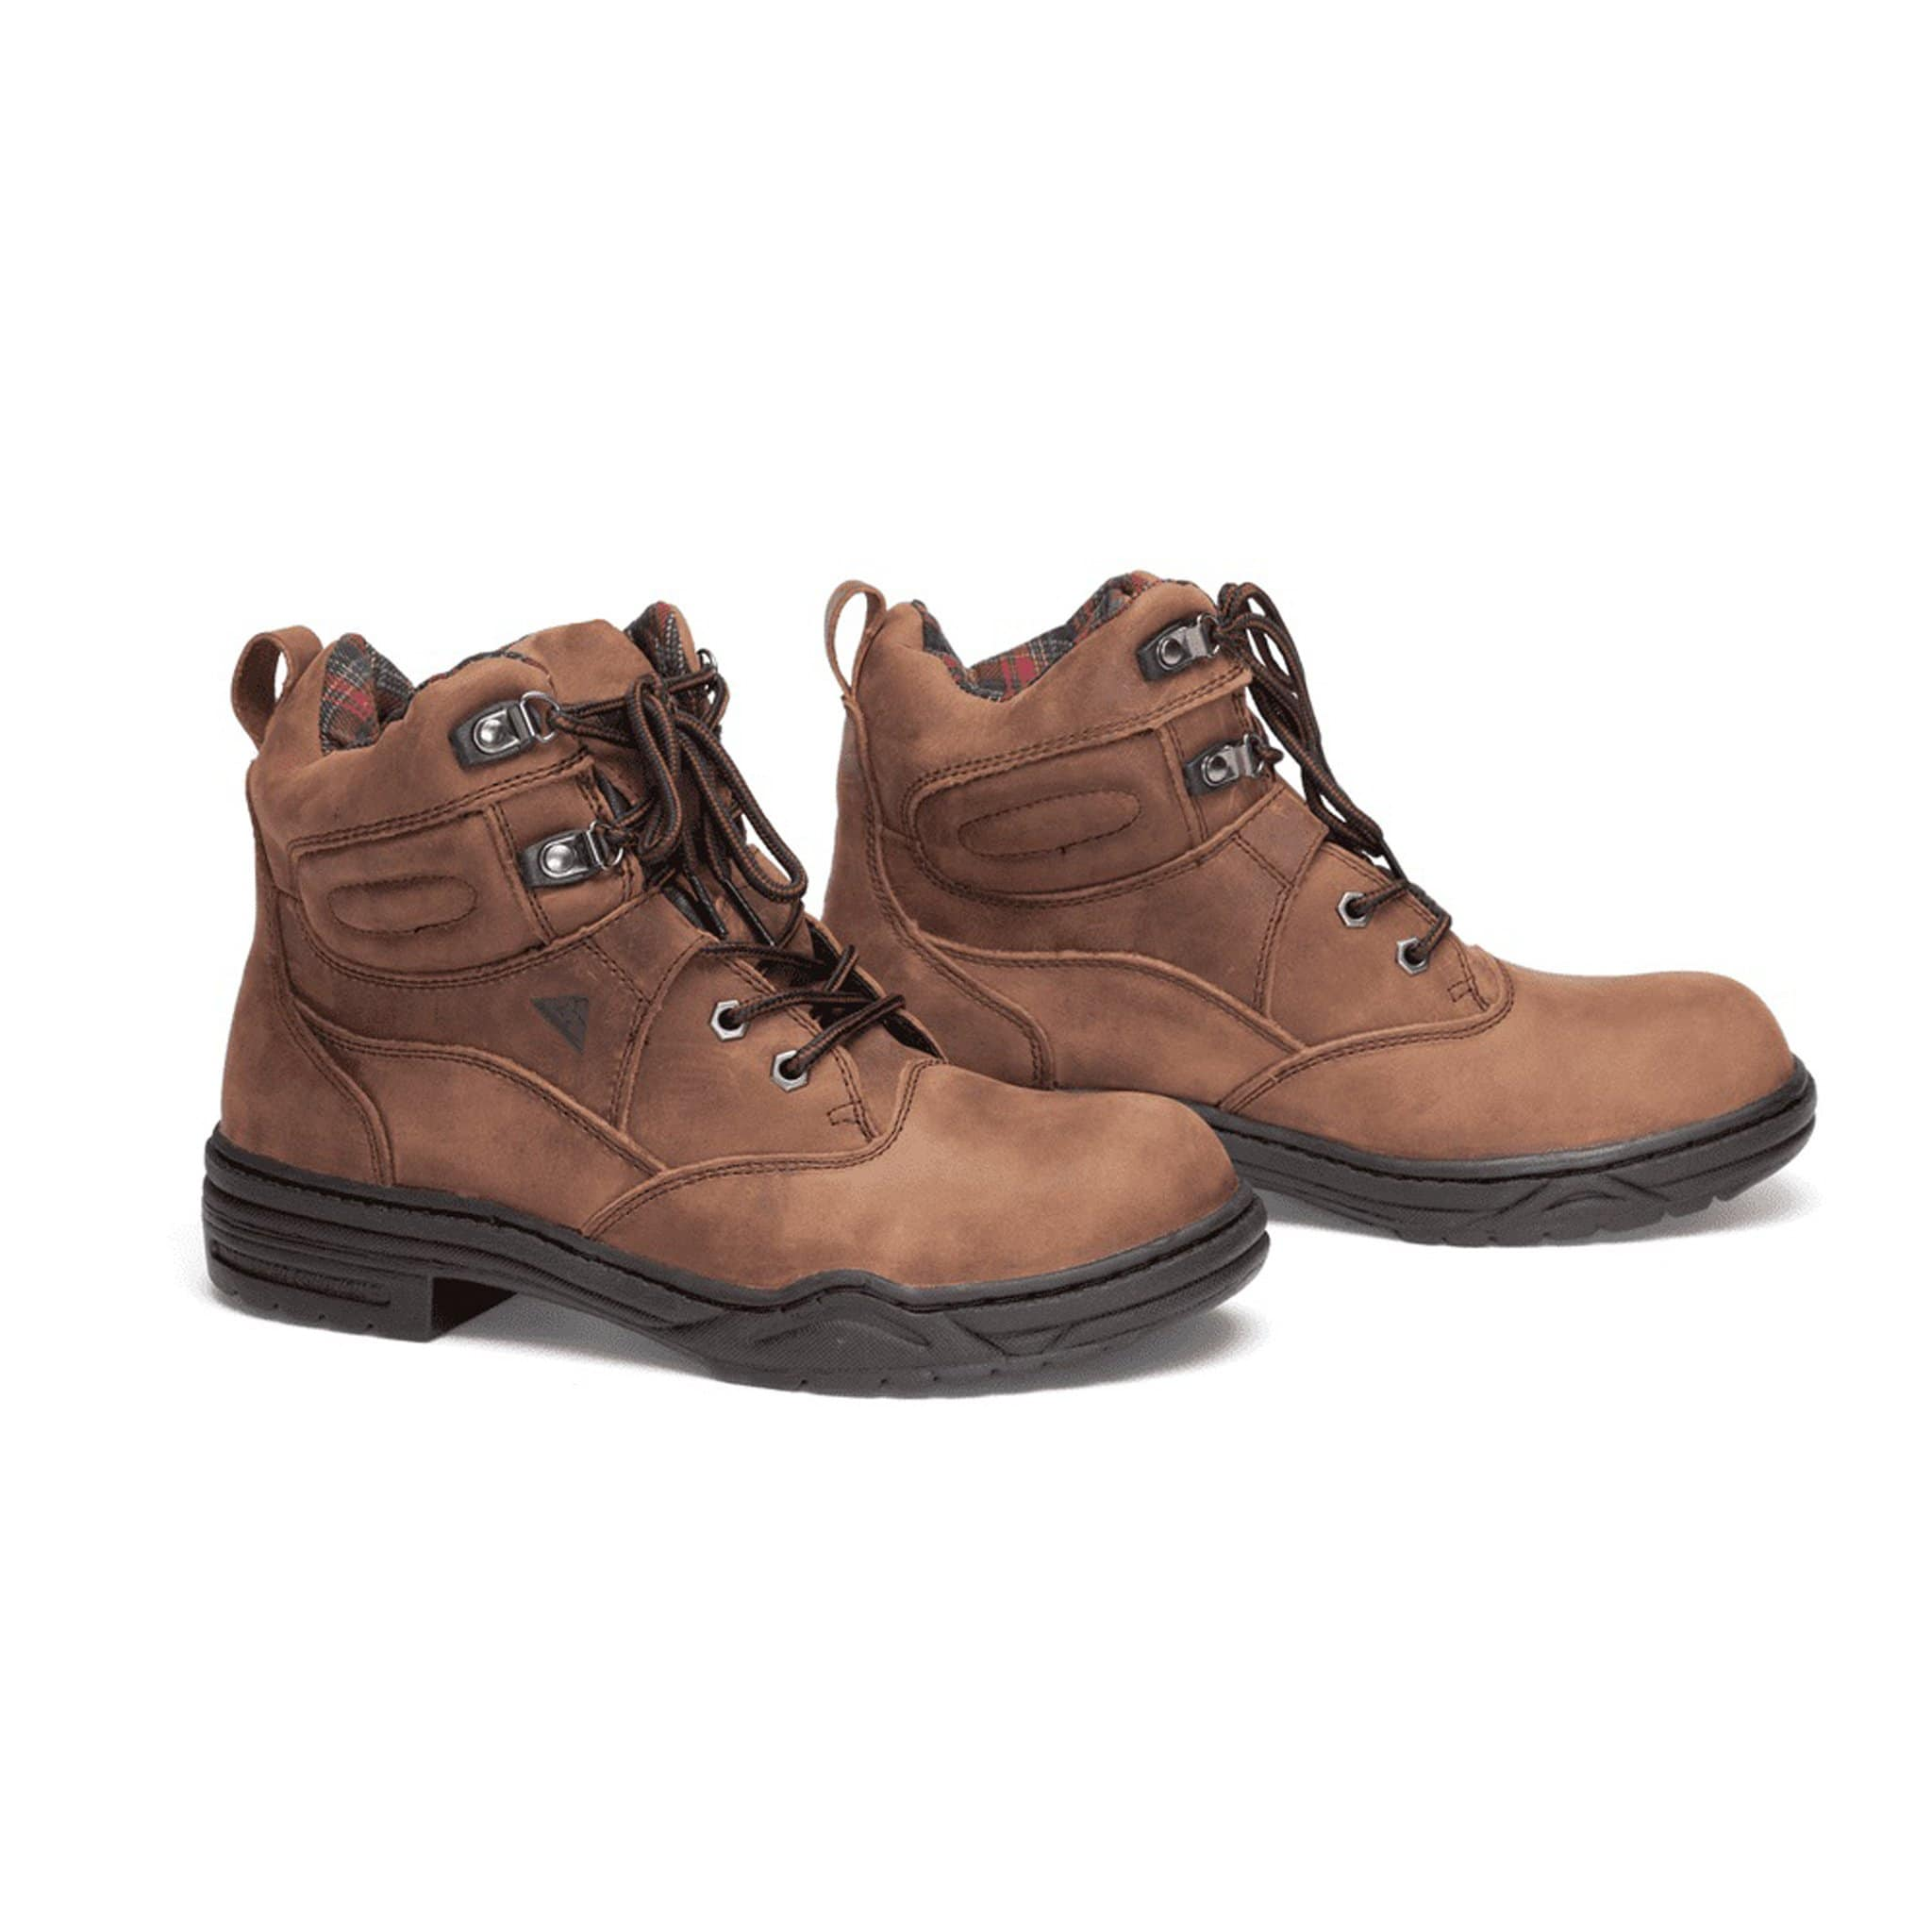 Mountain Horse Mountain Rider Classic Boot Brown 01540